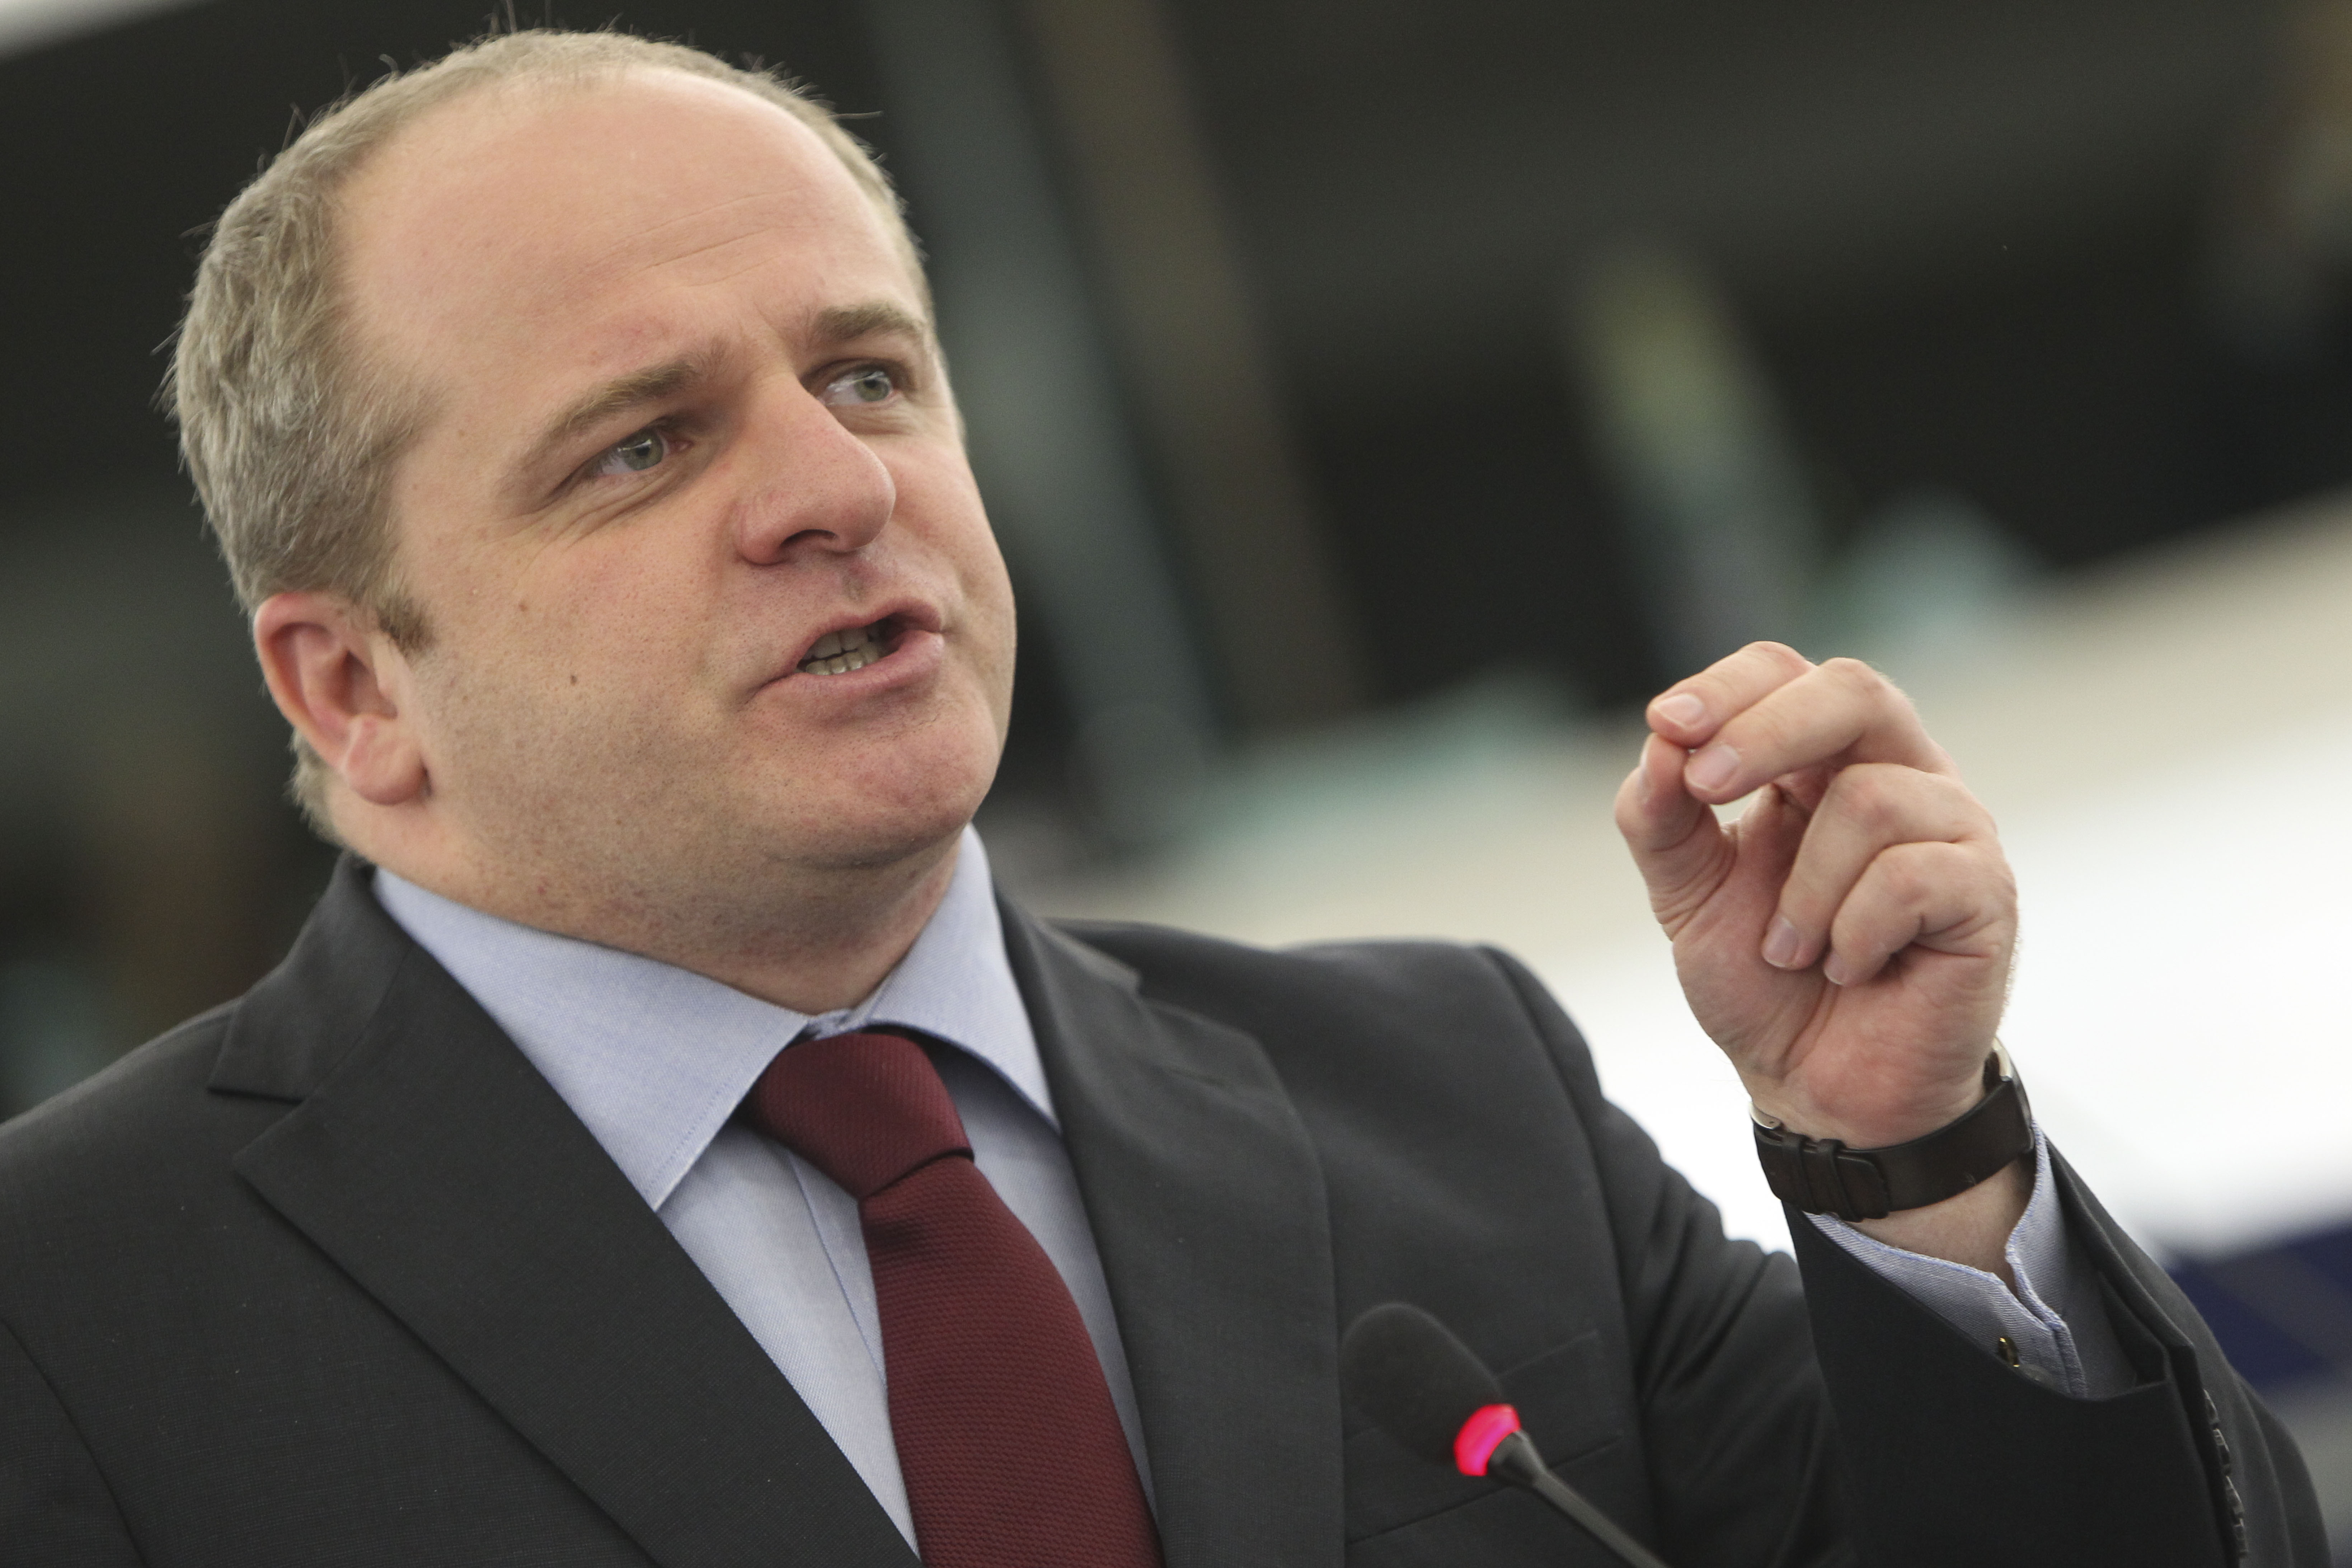 Pawel Kowal MEP statement on the annulment of Serhiy Vlasenko Parliamentary mandate